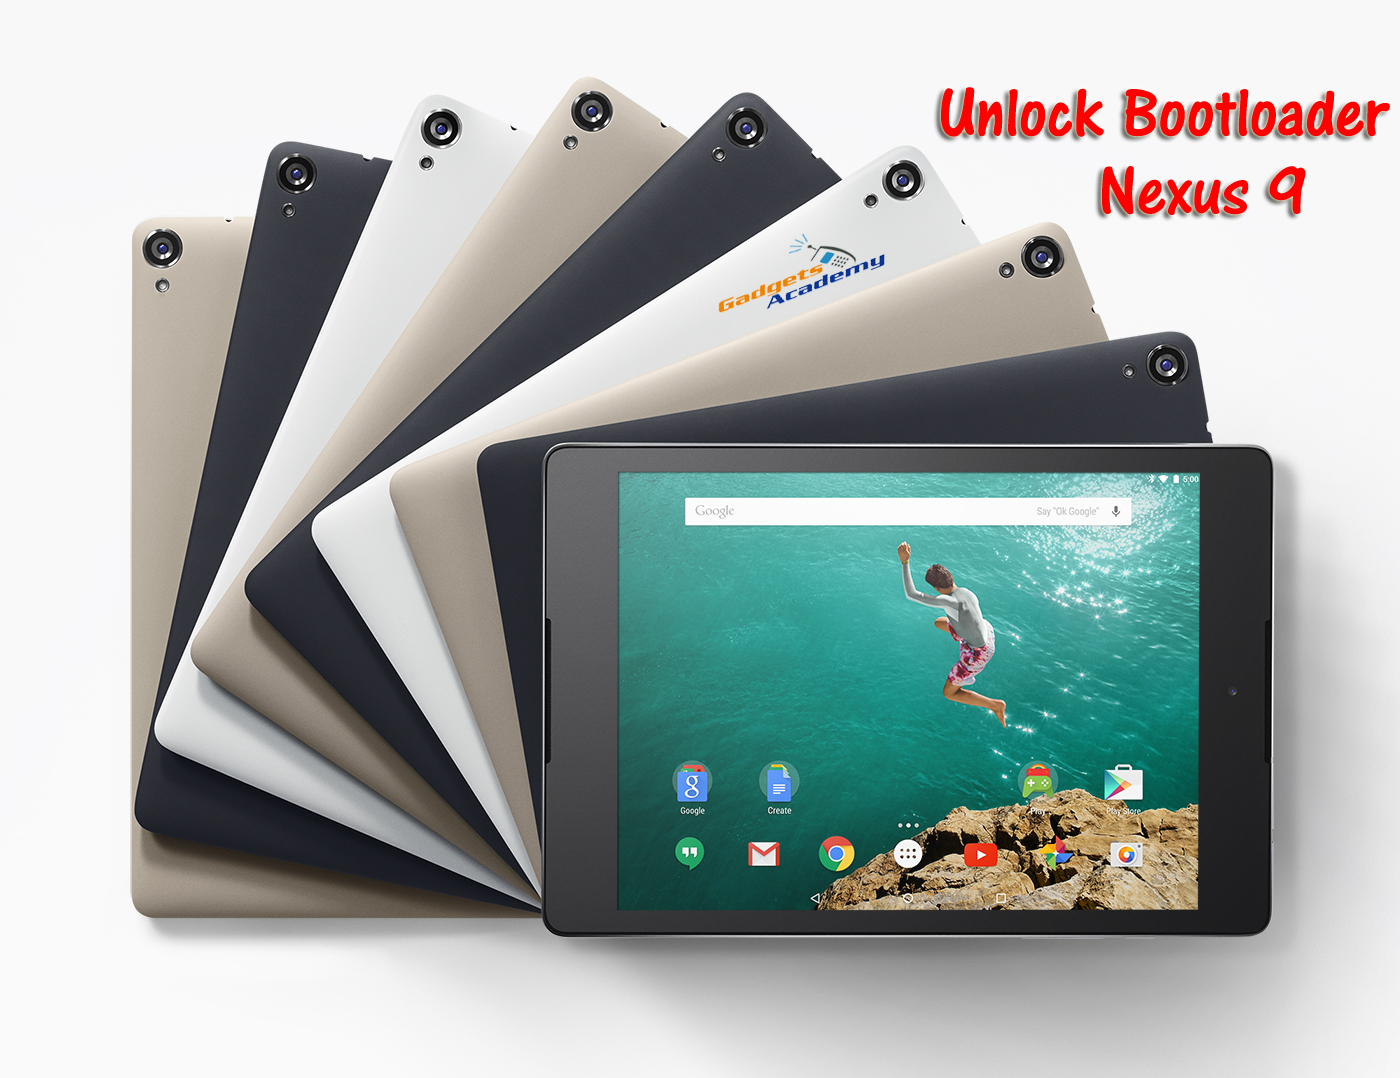 Unlock Bootloader on Nexus 9